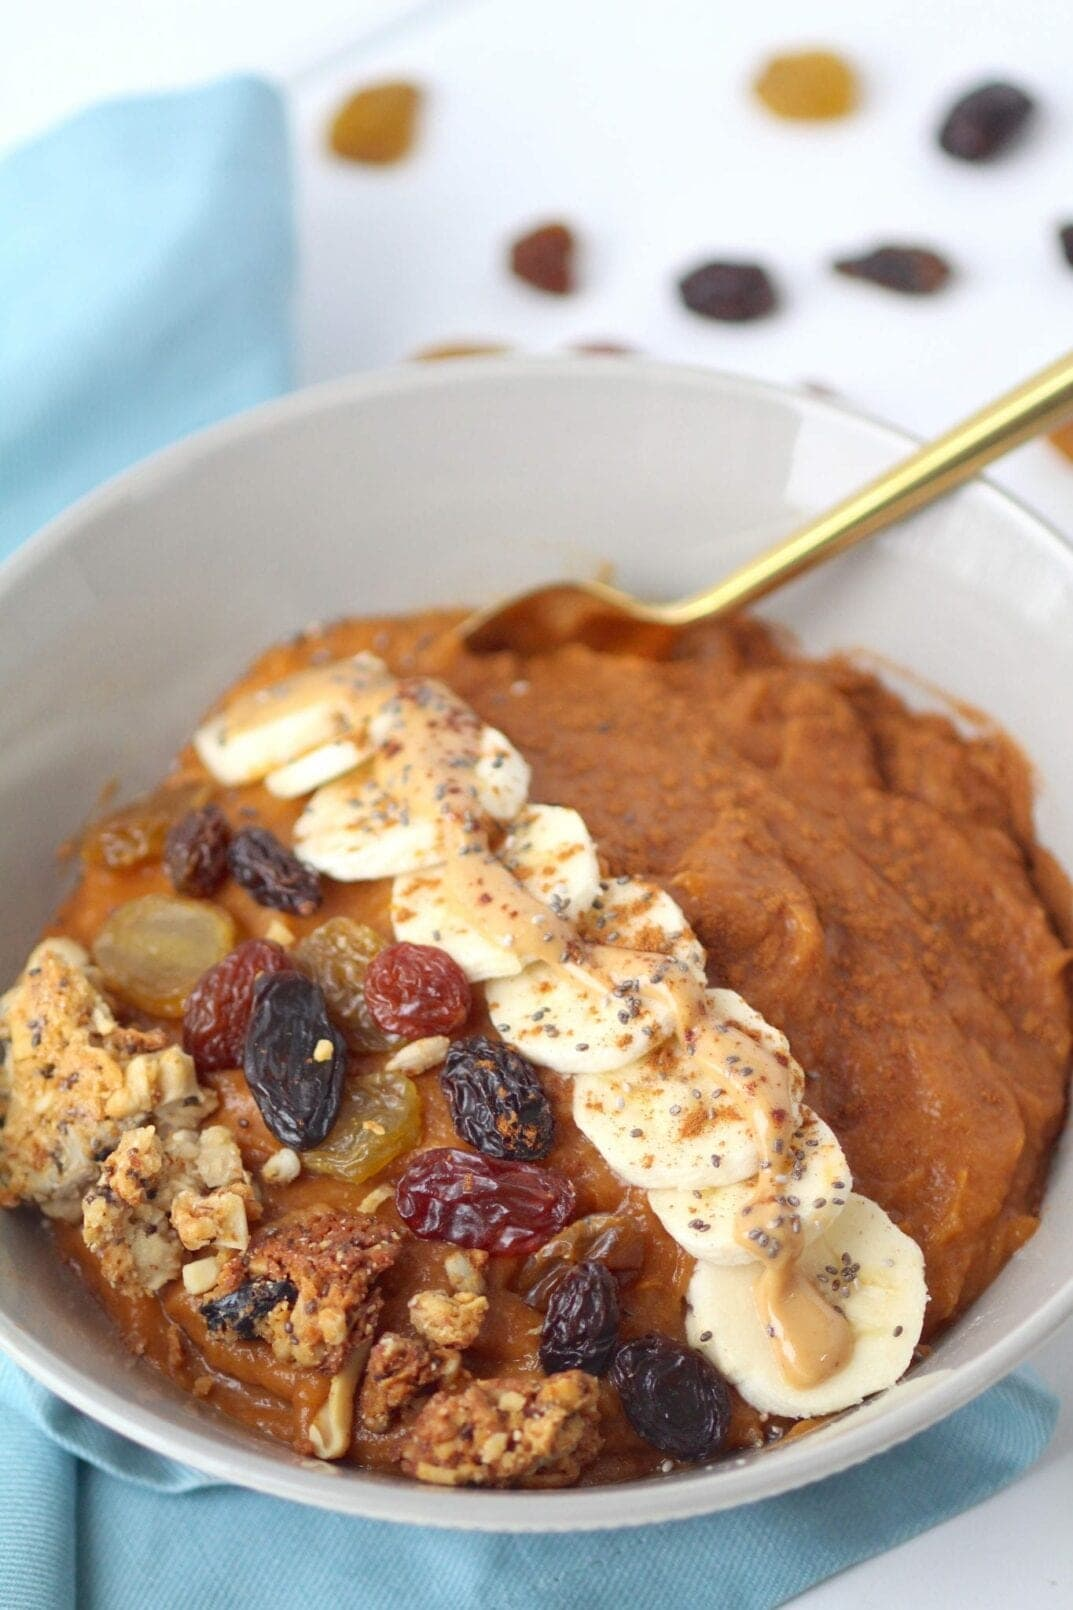 Simple Sweet Potato Breakfast Bowl